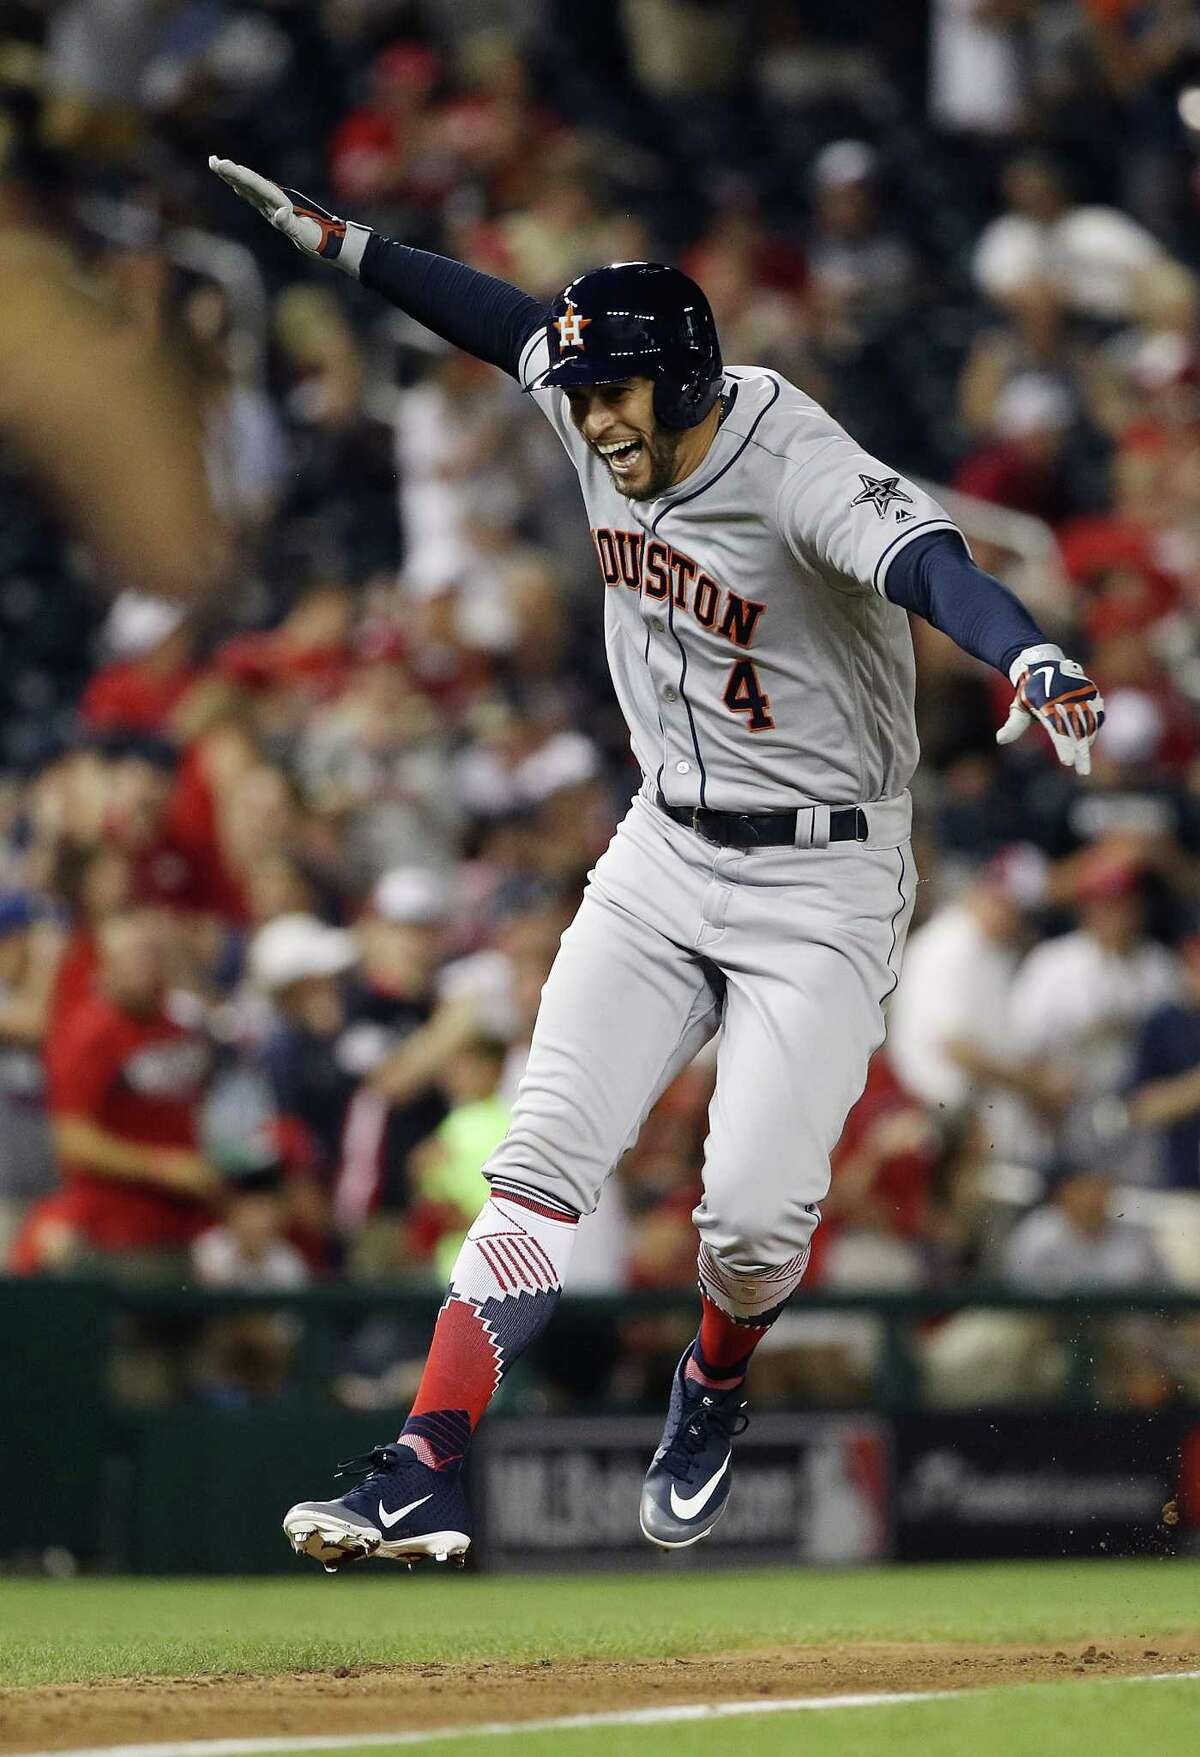 WASHINGTON, DC - JULY 17: George Springer #4 of the Houston Astros and the American League celebrates while rounding the bases after hitting a solo home run in the tenth inning against the National League during the 89th MLB All-Star Game, presented by Mastercard at Nationals Park on July 17, 2018 in Washington, DC.